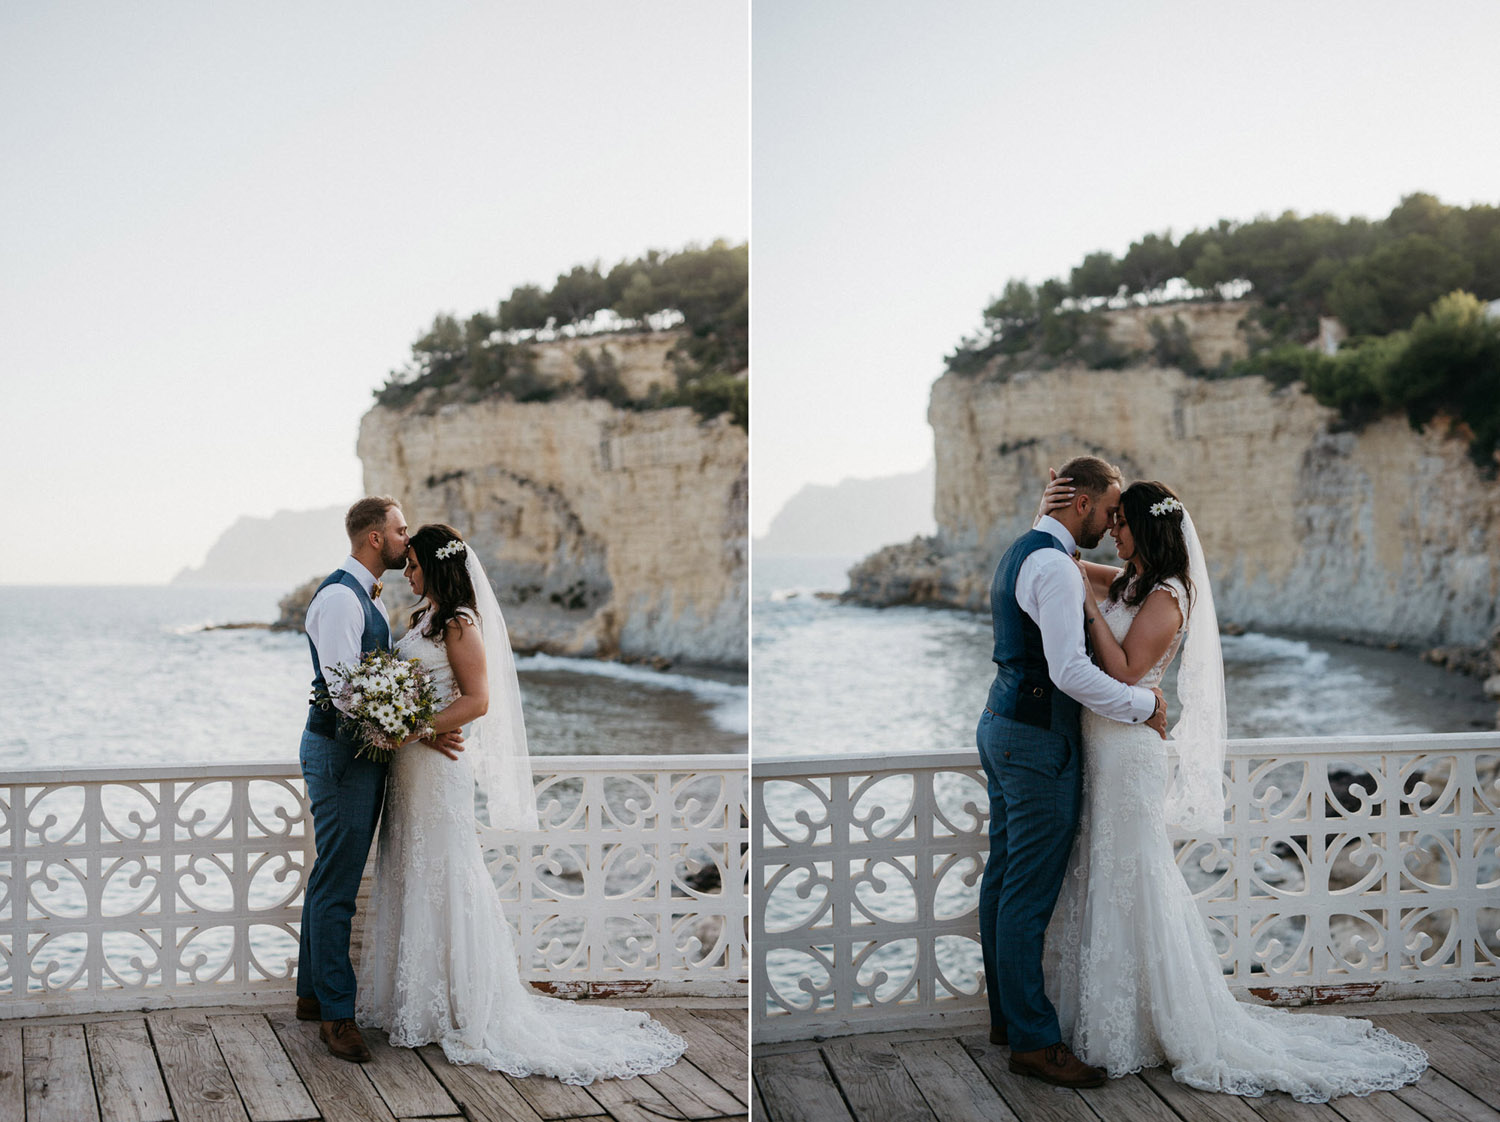 Wedding in Benissa-Jávea (Spain)